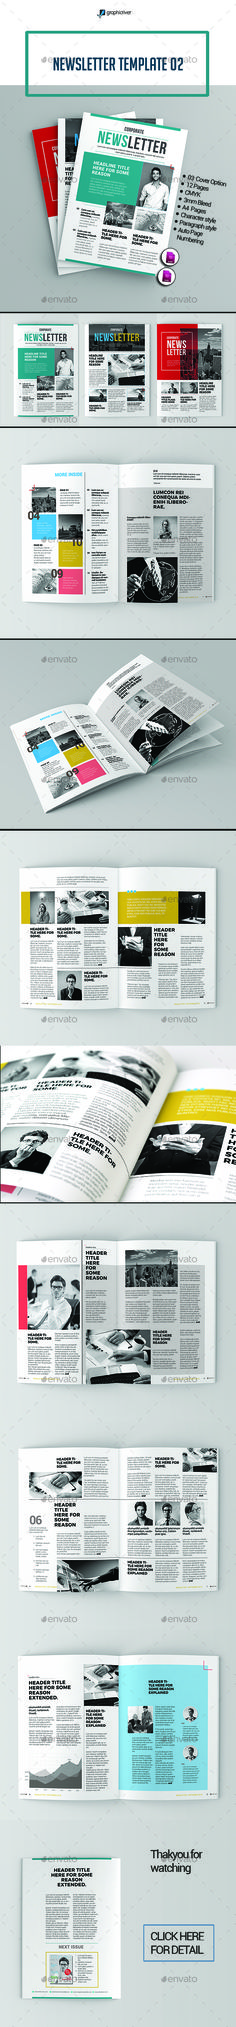 Newsletter Template InDesign INDD. Download here: https://graphicriver.net/item/newsletter-template-02/17384421?ref=ksioks